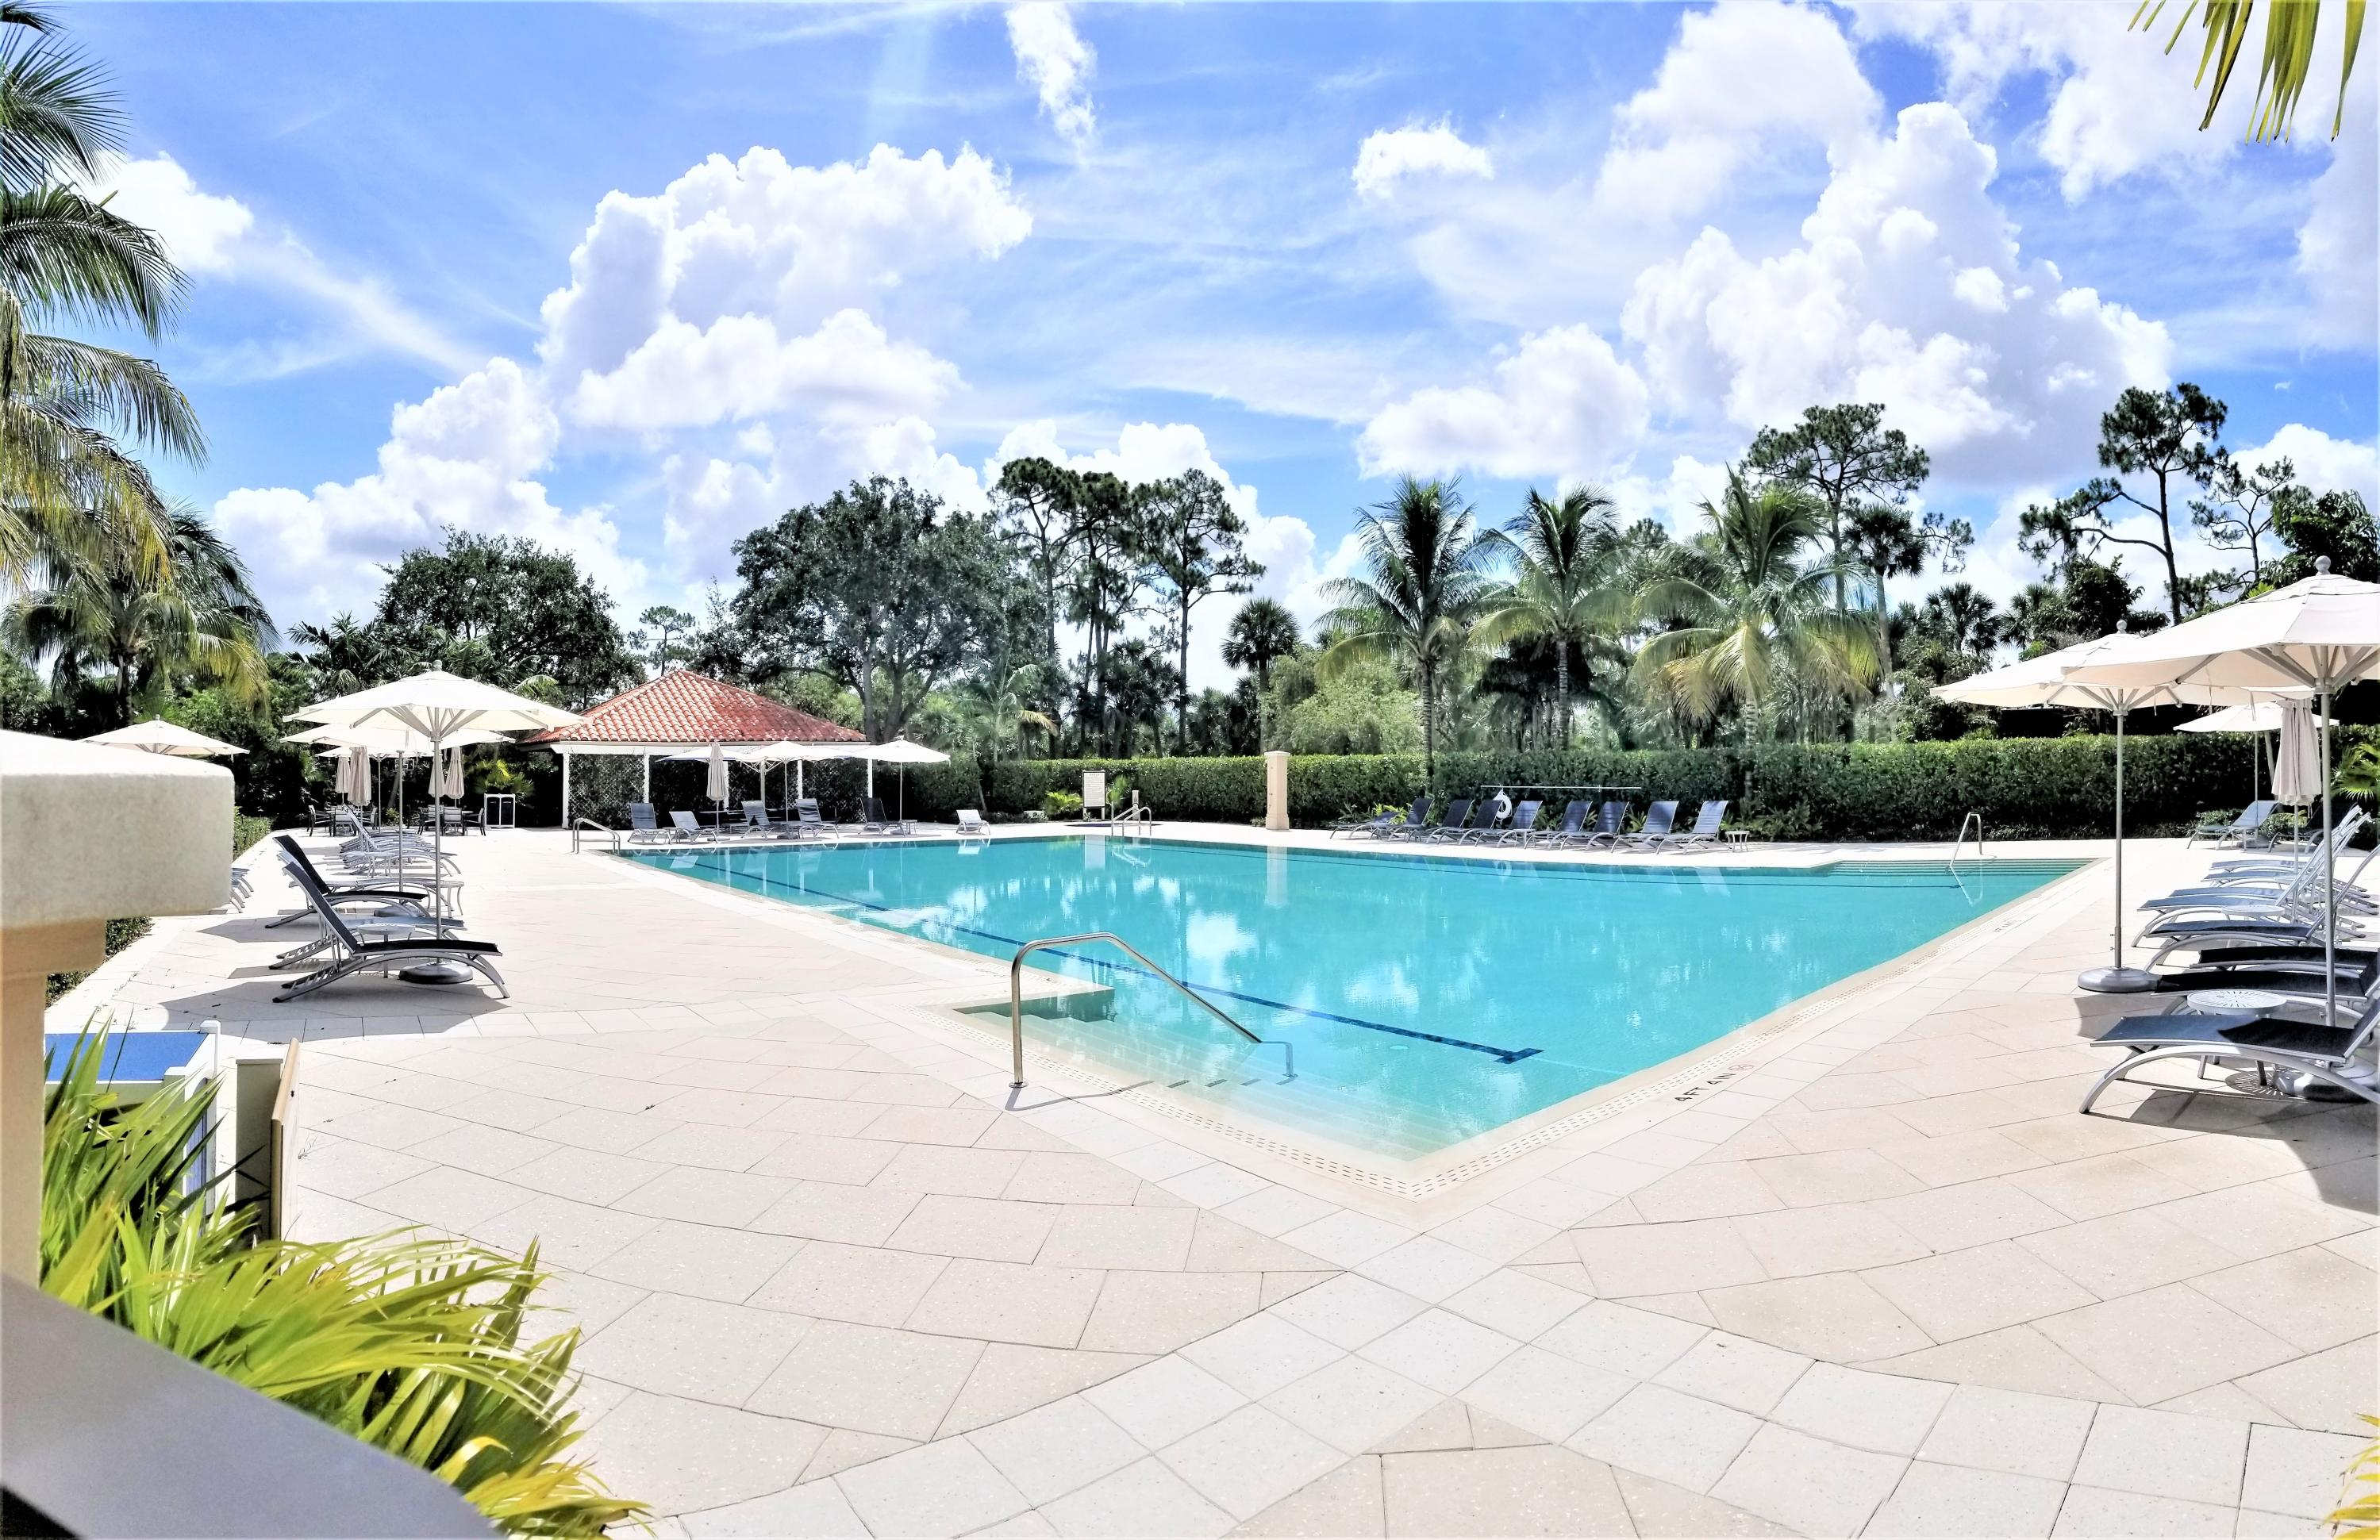 BREAKERS WEST WEST PALM BEACH REAL ESTATE